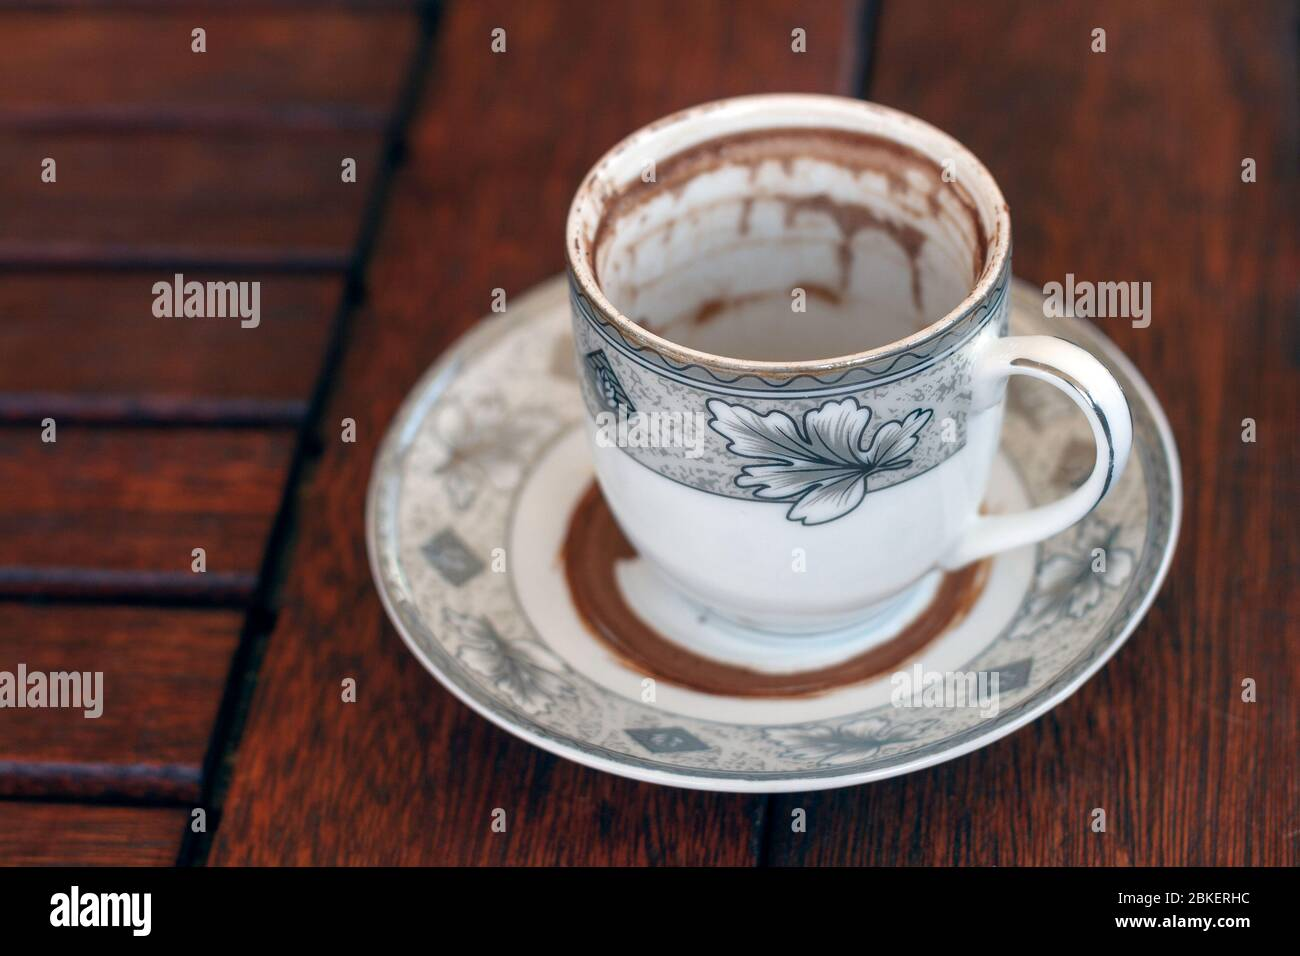 Finished Cup of Turkish Coffee on wooden background waiting for fortune telling Stock Photo